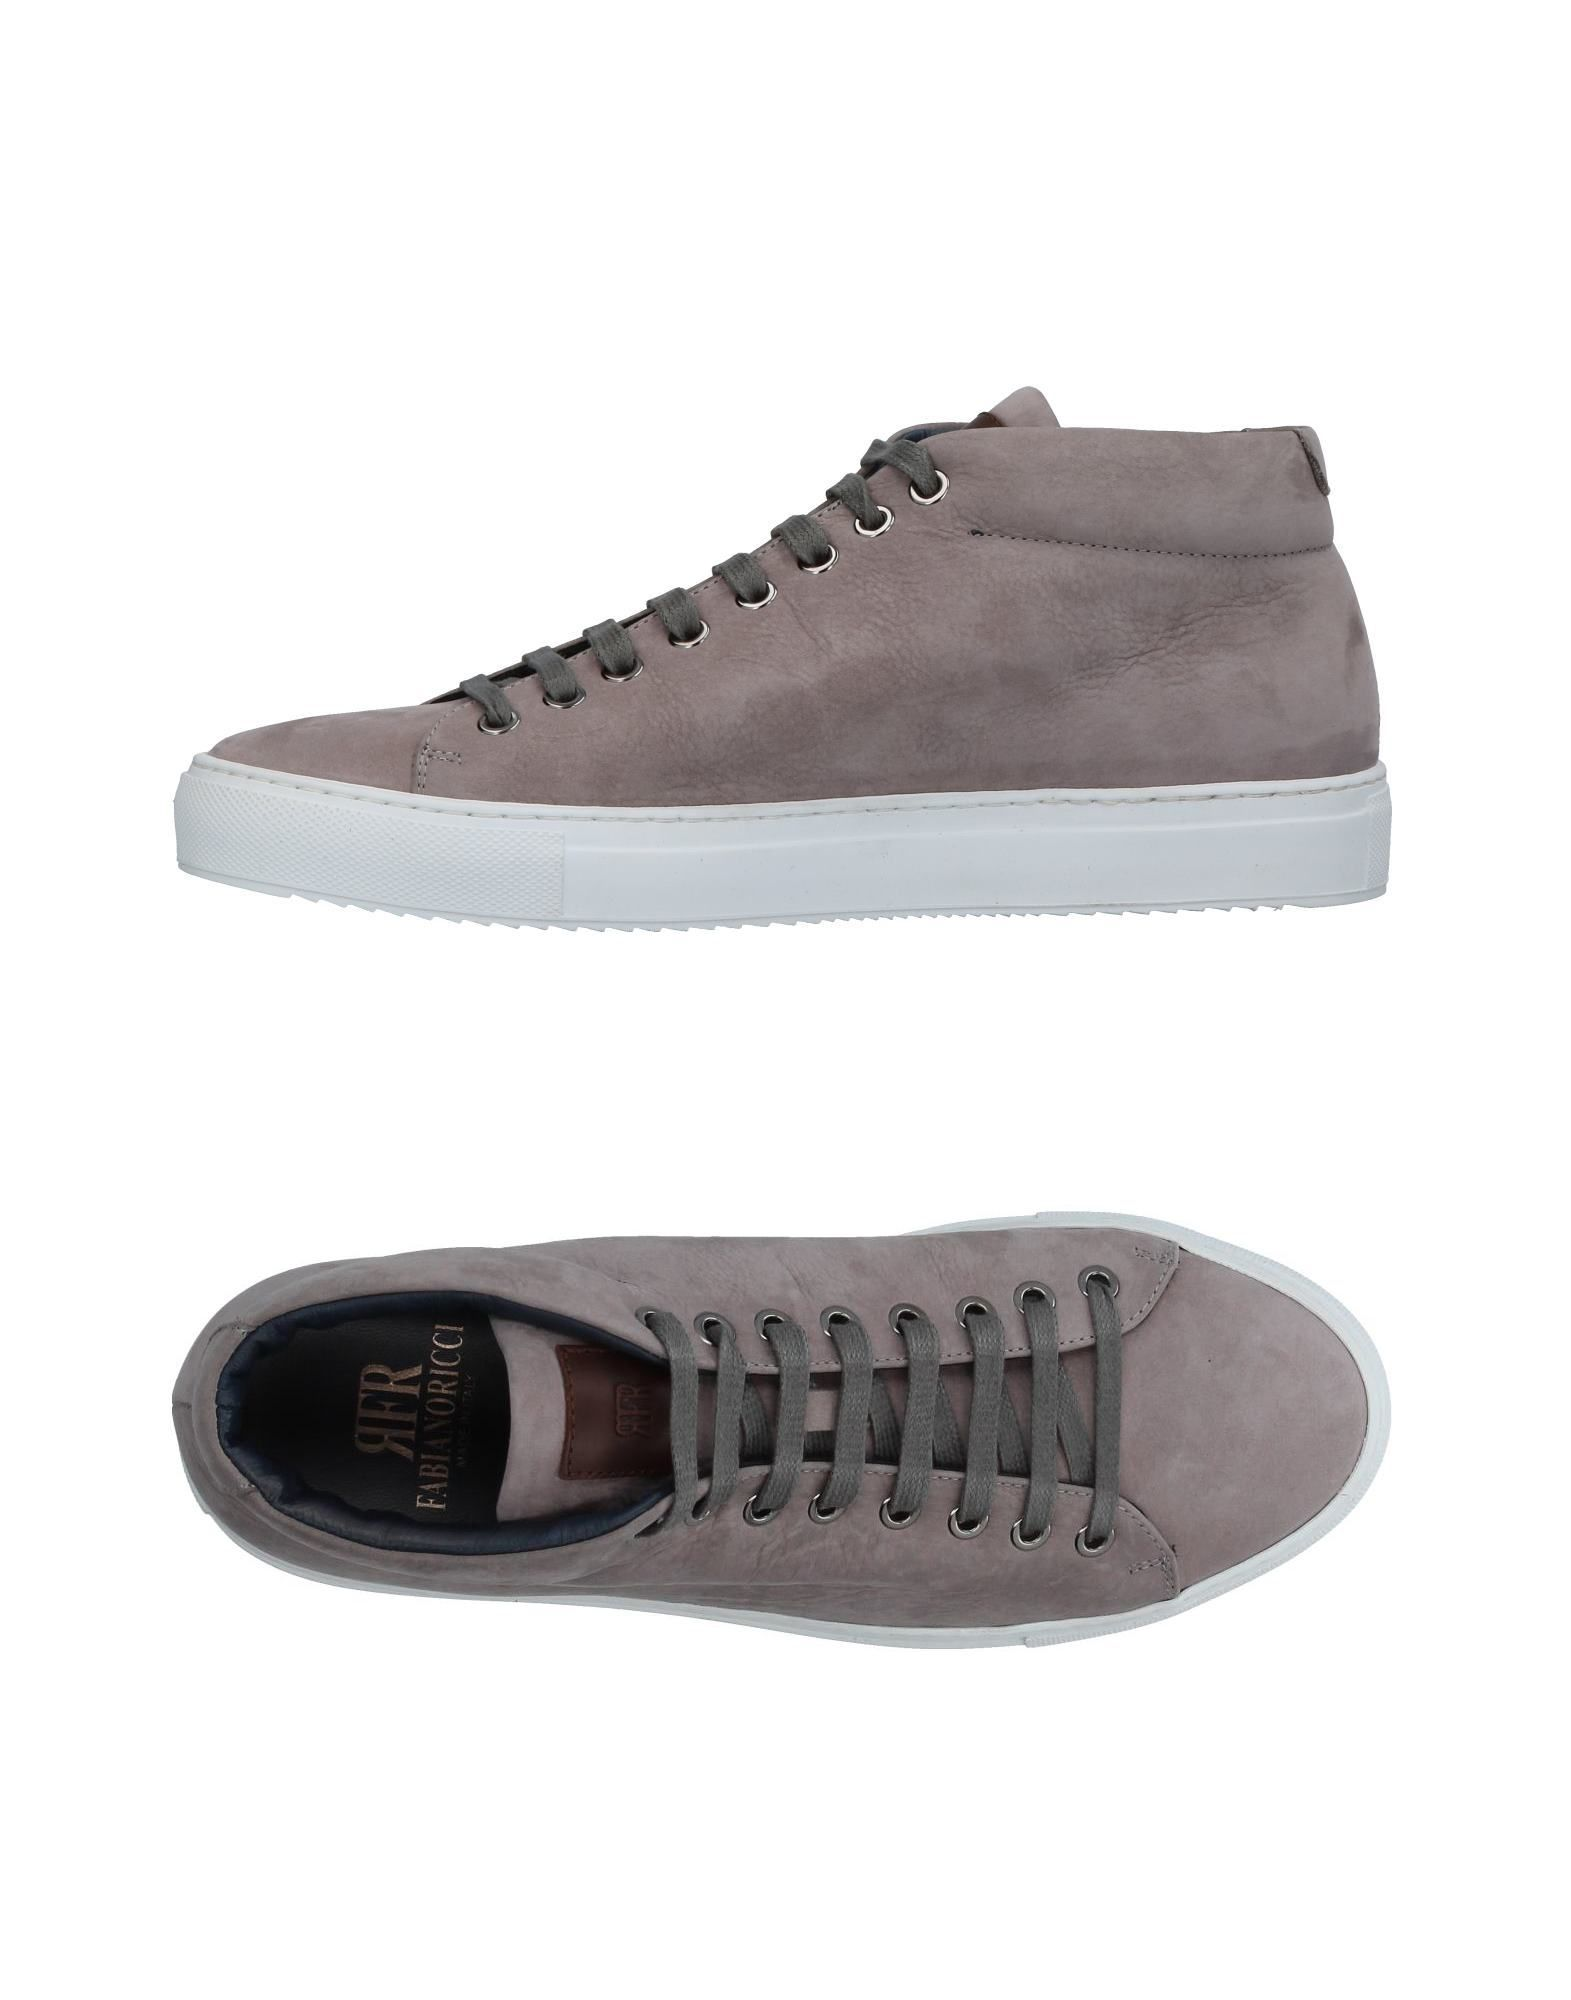 Sneakers Fabiano Ricci Homme - Sneakers Fabiano Ricci  Gris Confortable et belle